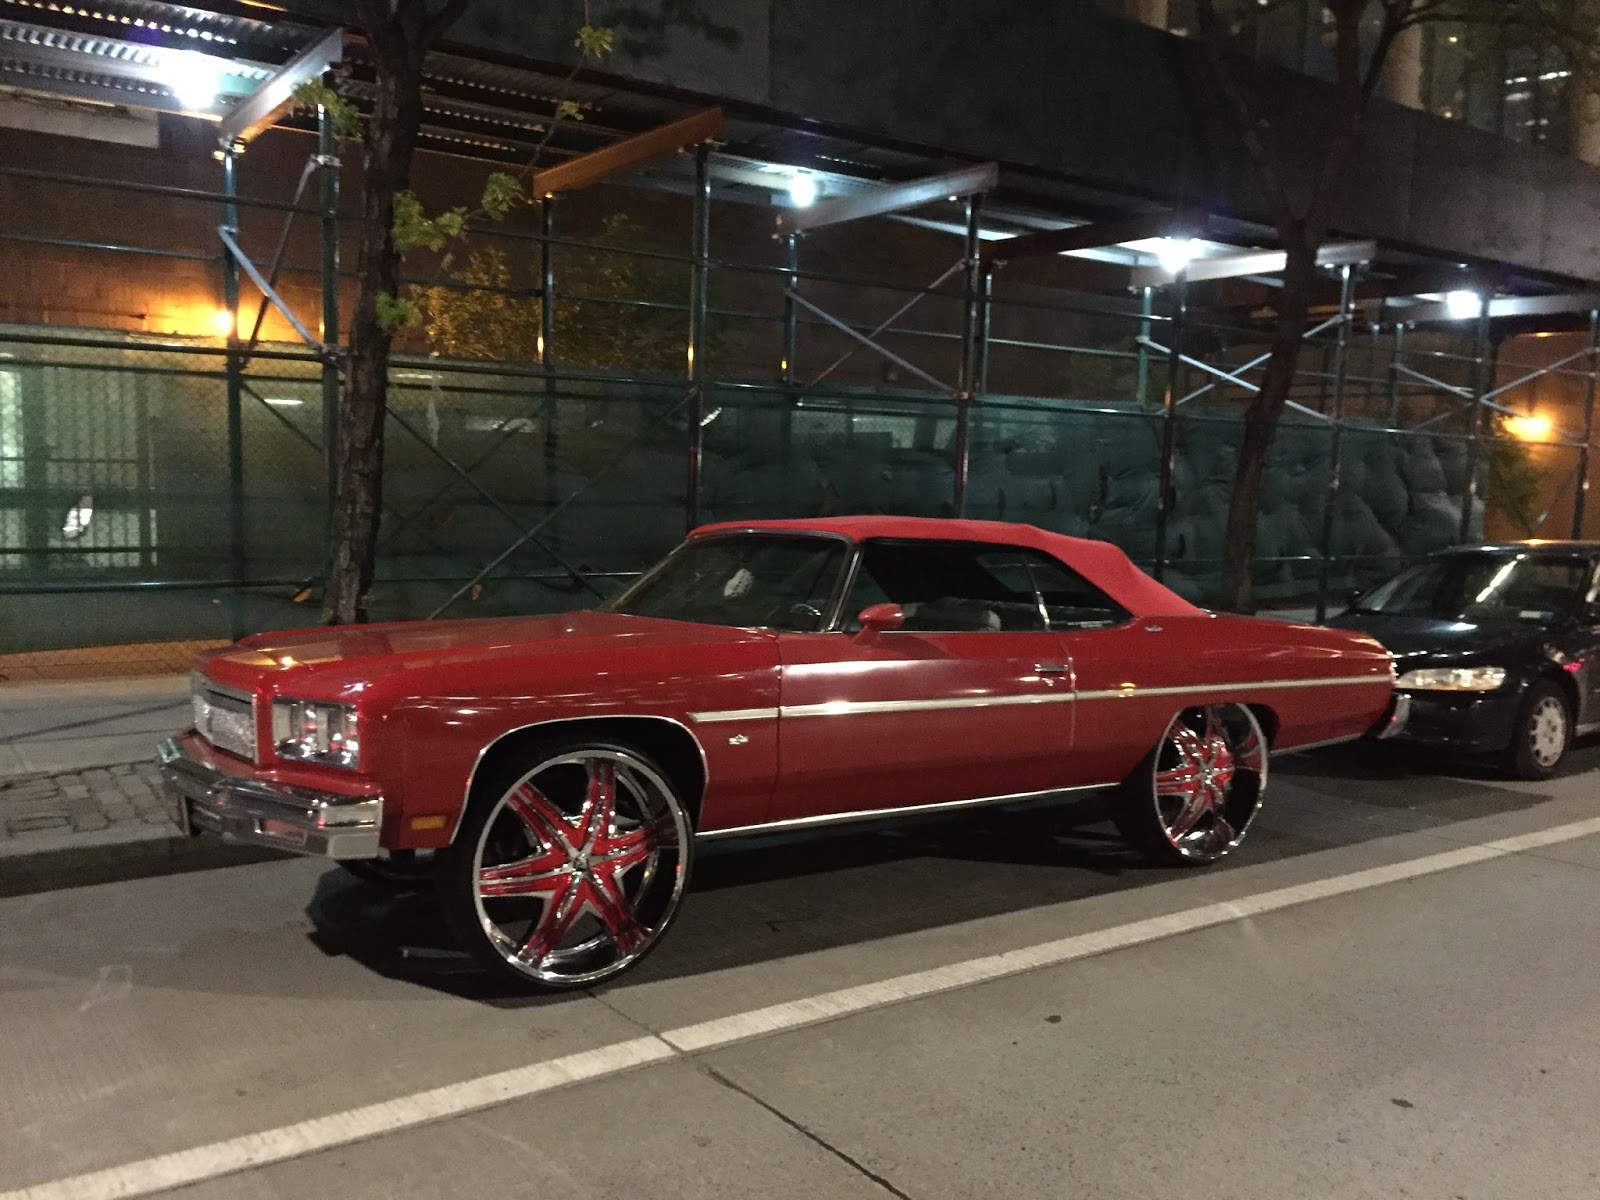 This Is A 1975 Chevrolet Caprice Convertible In What Might Be Medium Red For The Uninitiated Donk Almost Always Rear Wheel Drive